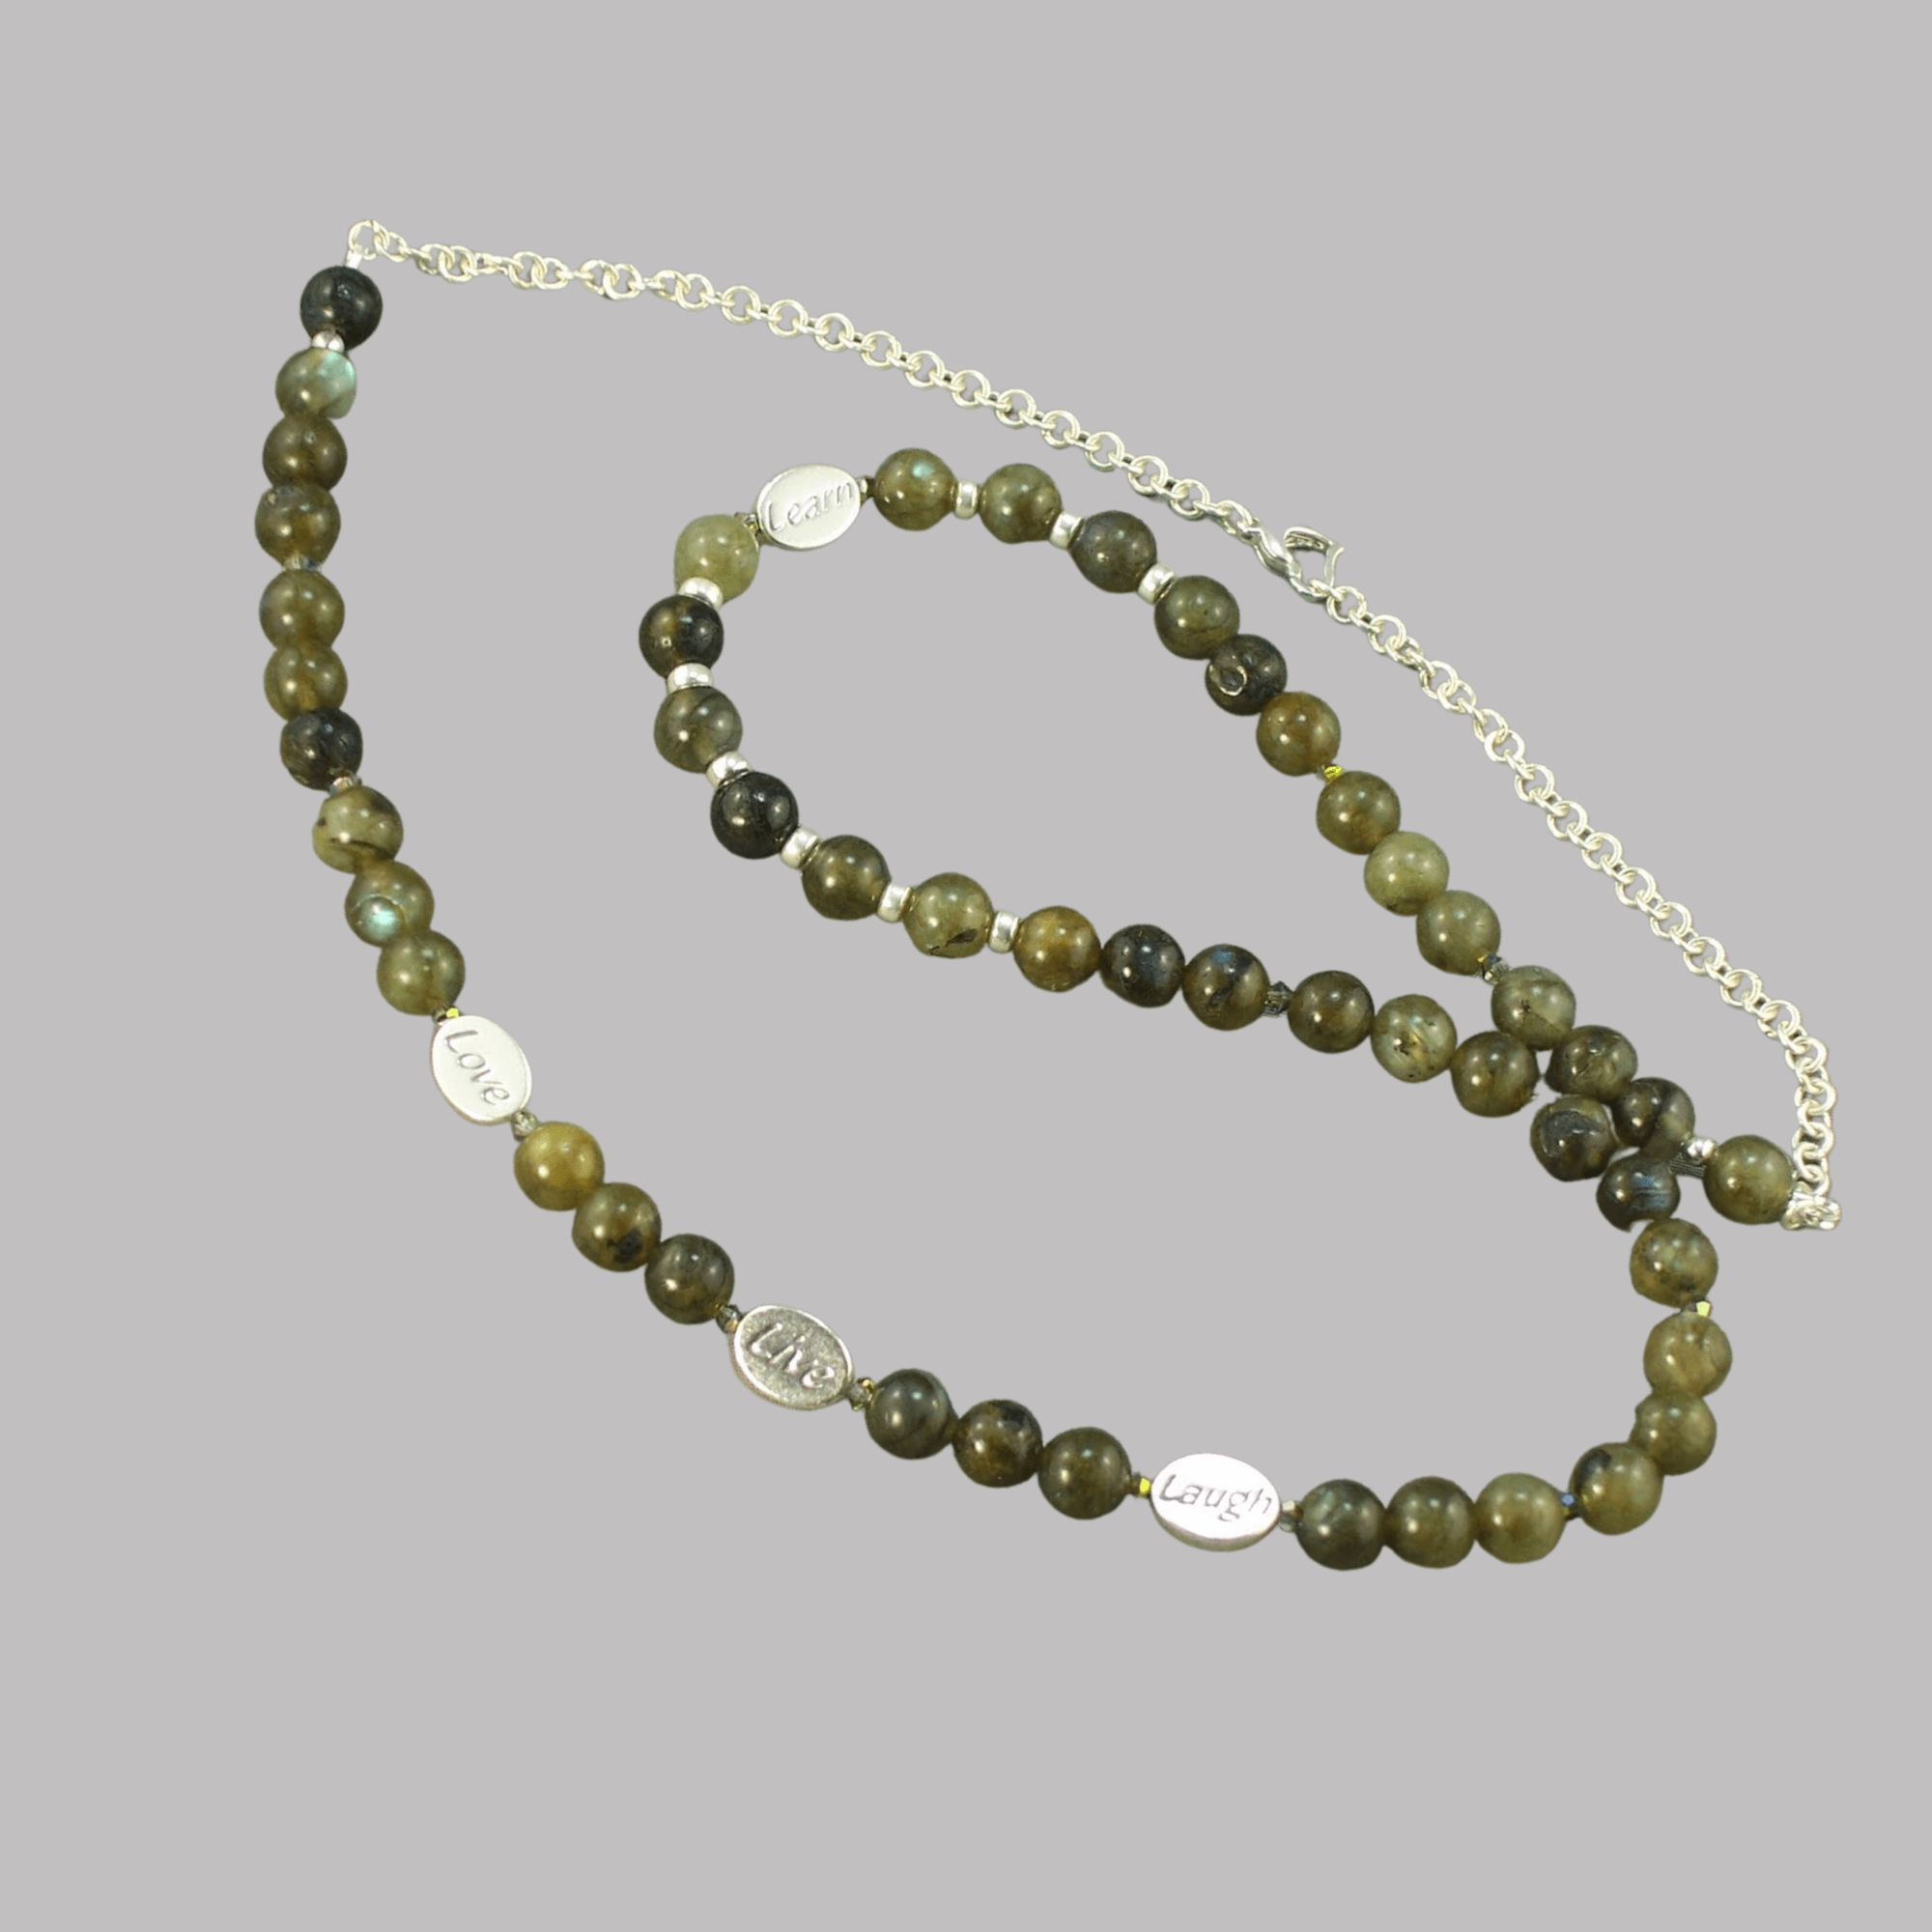 labradorite gemstone and sterling silver necklace by MaxineFaye